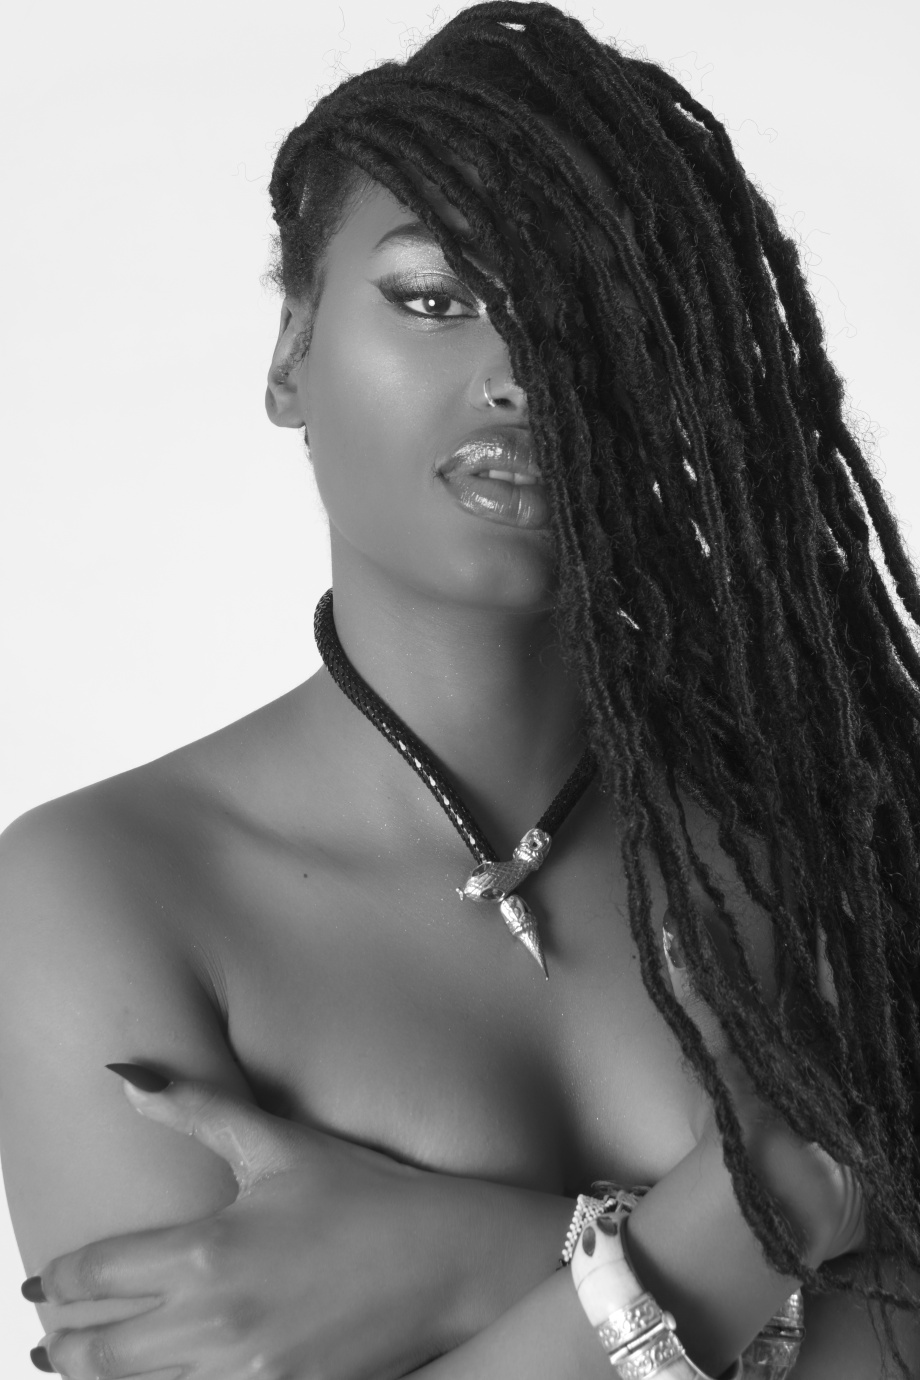 minnie marley, singer, soul, alternative, tattoos, glamour, studio, lingerie, topless, implied, black and white